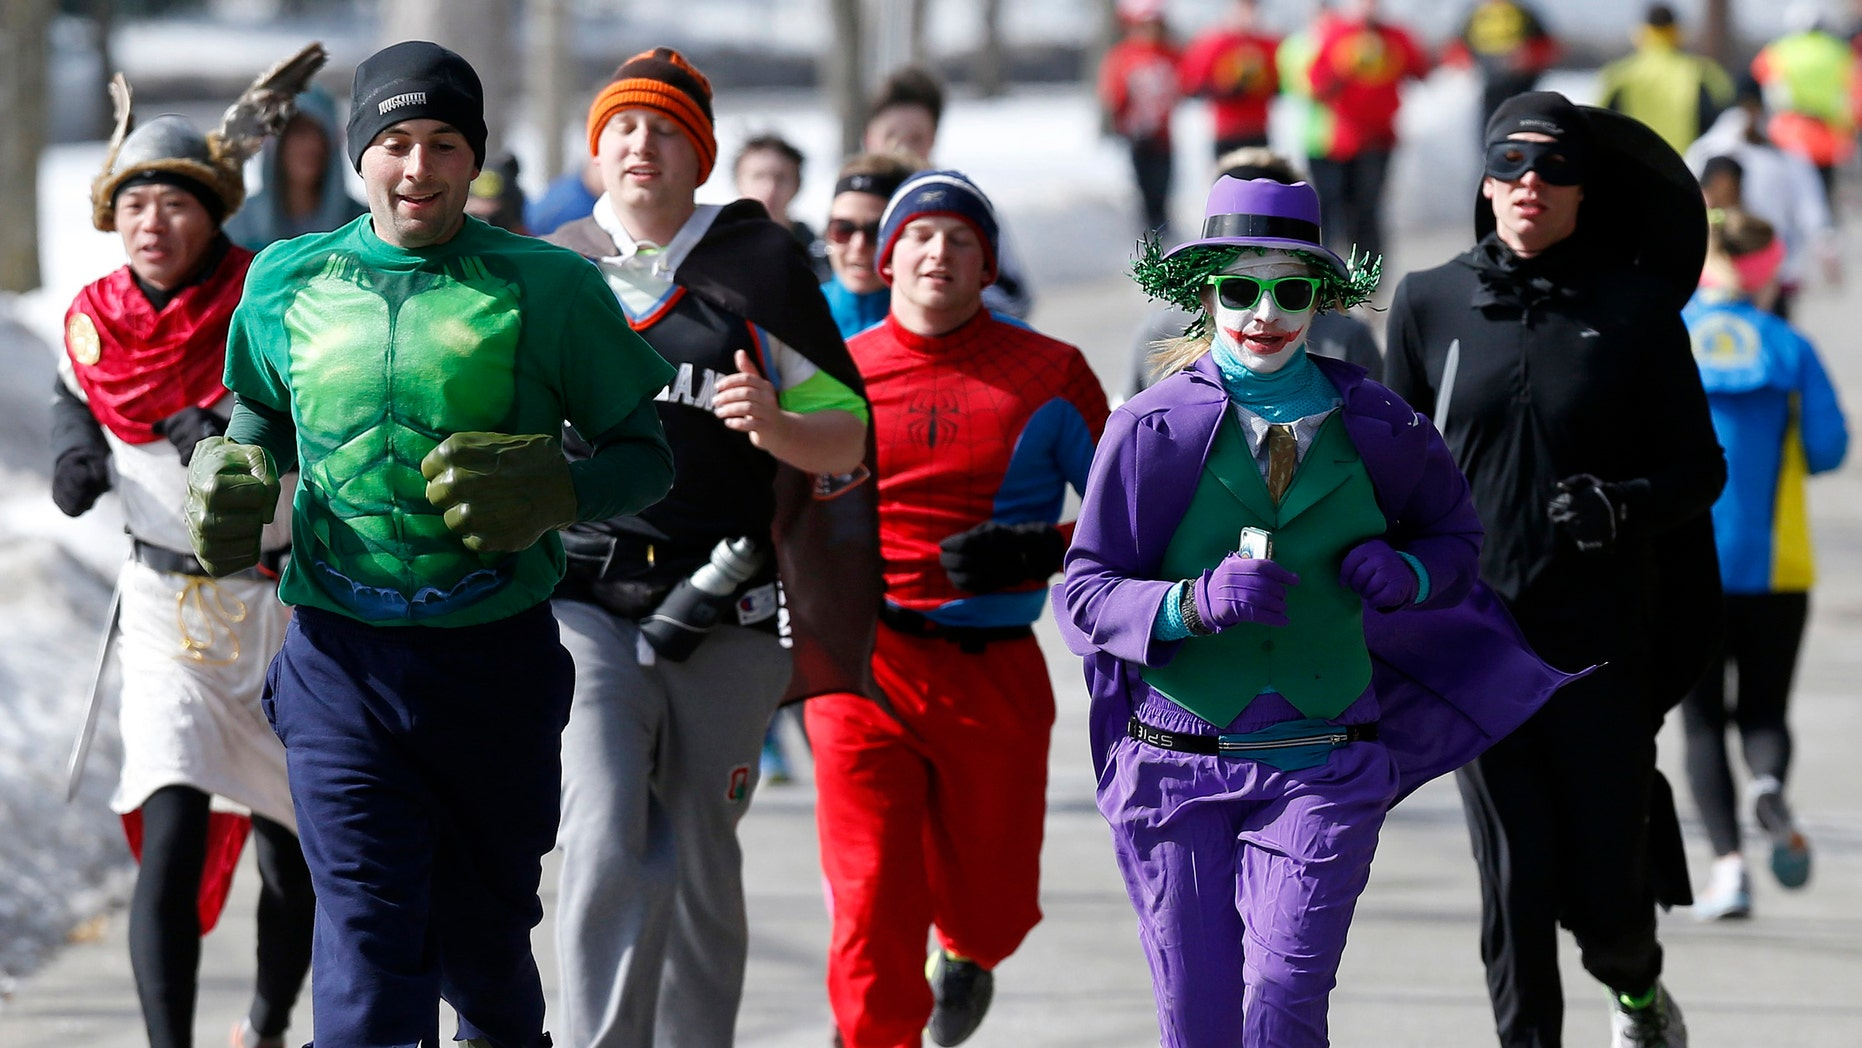 Runners in costume train for the Boston Marathon in Newton, Mass., Saturday, March 1, 2014. People running this year's Boston Marathon for charity gathered for a 17-mile training run along the last 17 miles of the course. (AP Photo/Michael Dwyer)